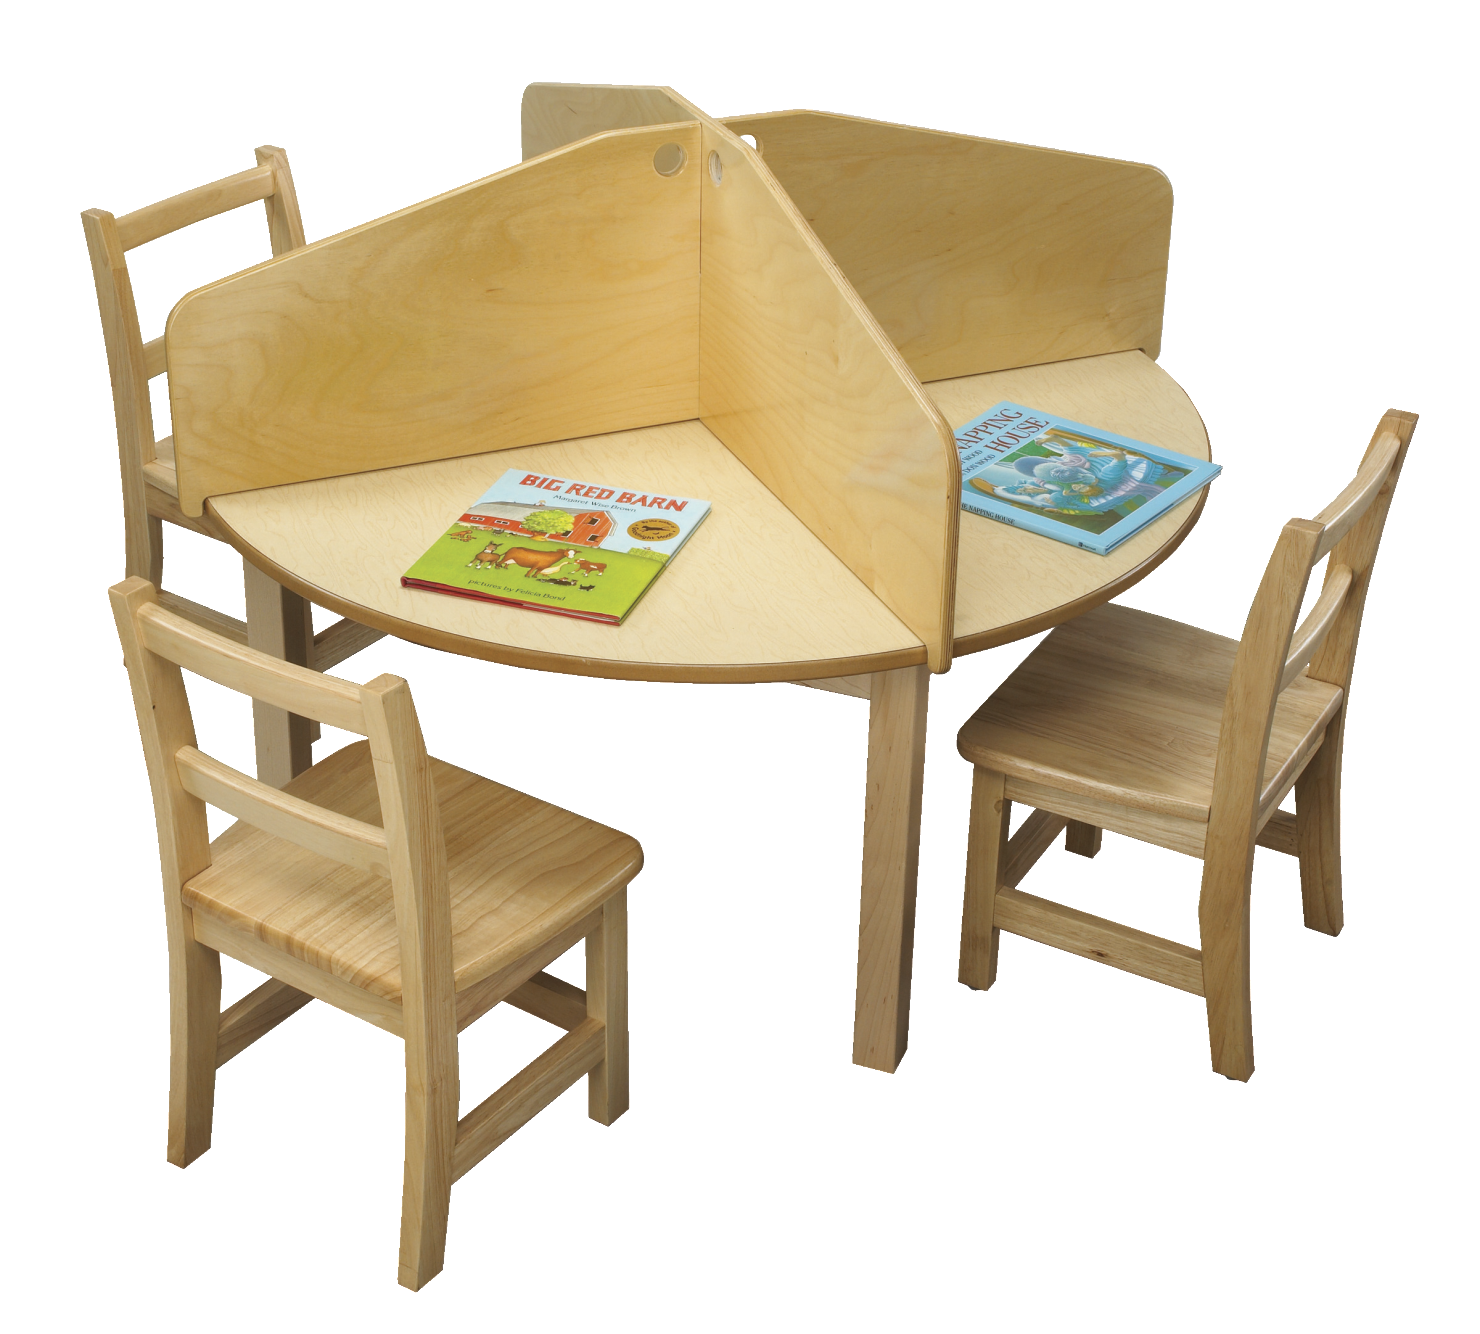 Childcraft 4u2013Student Carrel Divider With Round Table, 42 Round X 28 H In